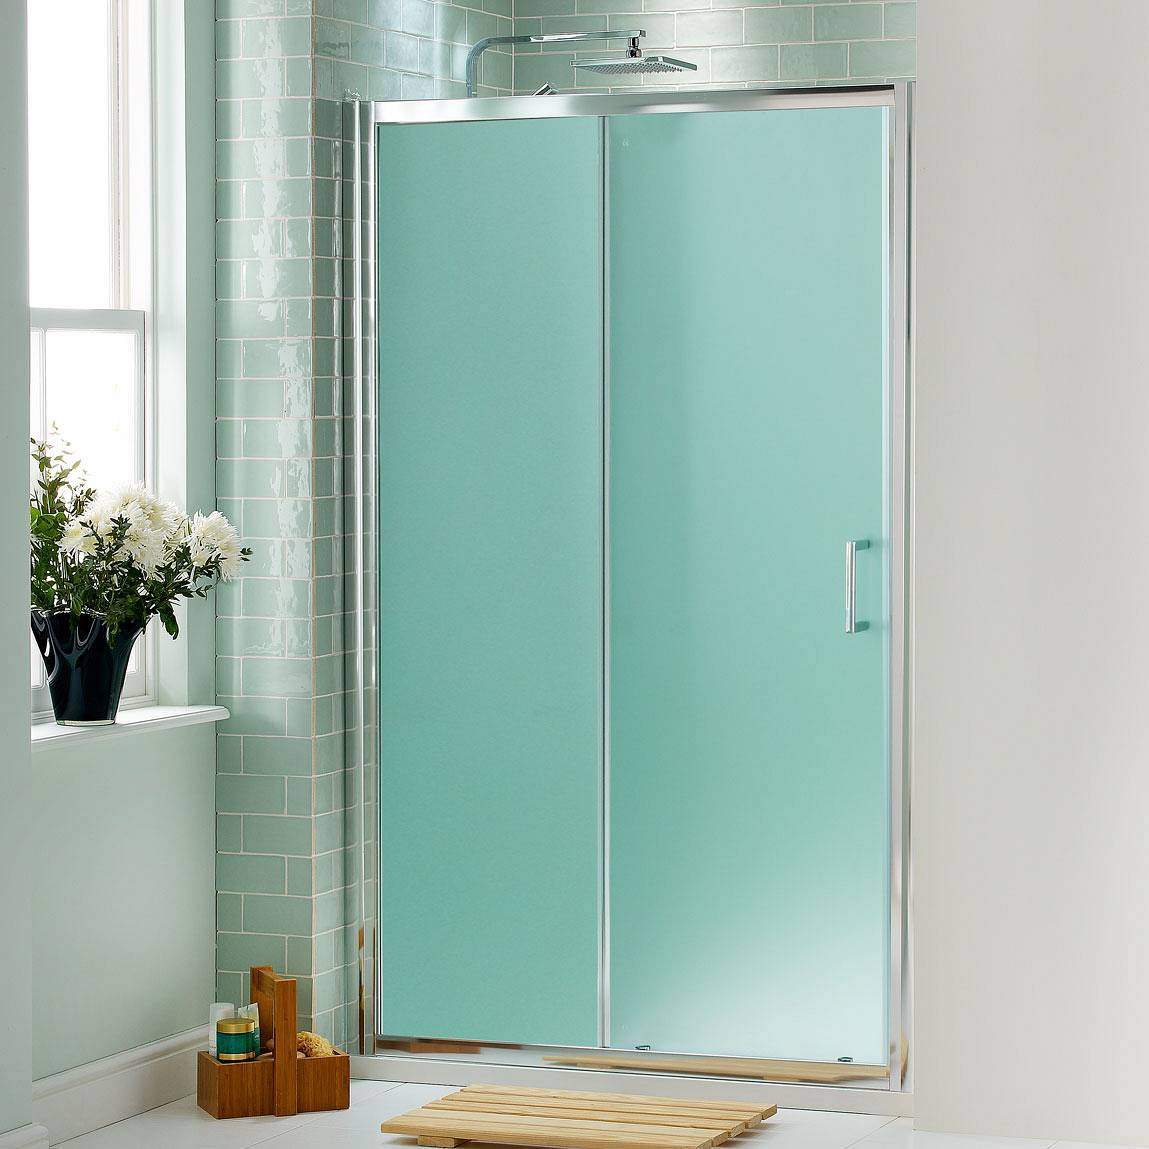 21 creative glass shower doors designs for bathrooms for Bathroom entrance doors